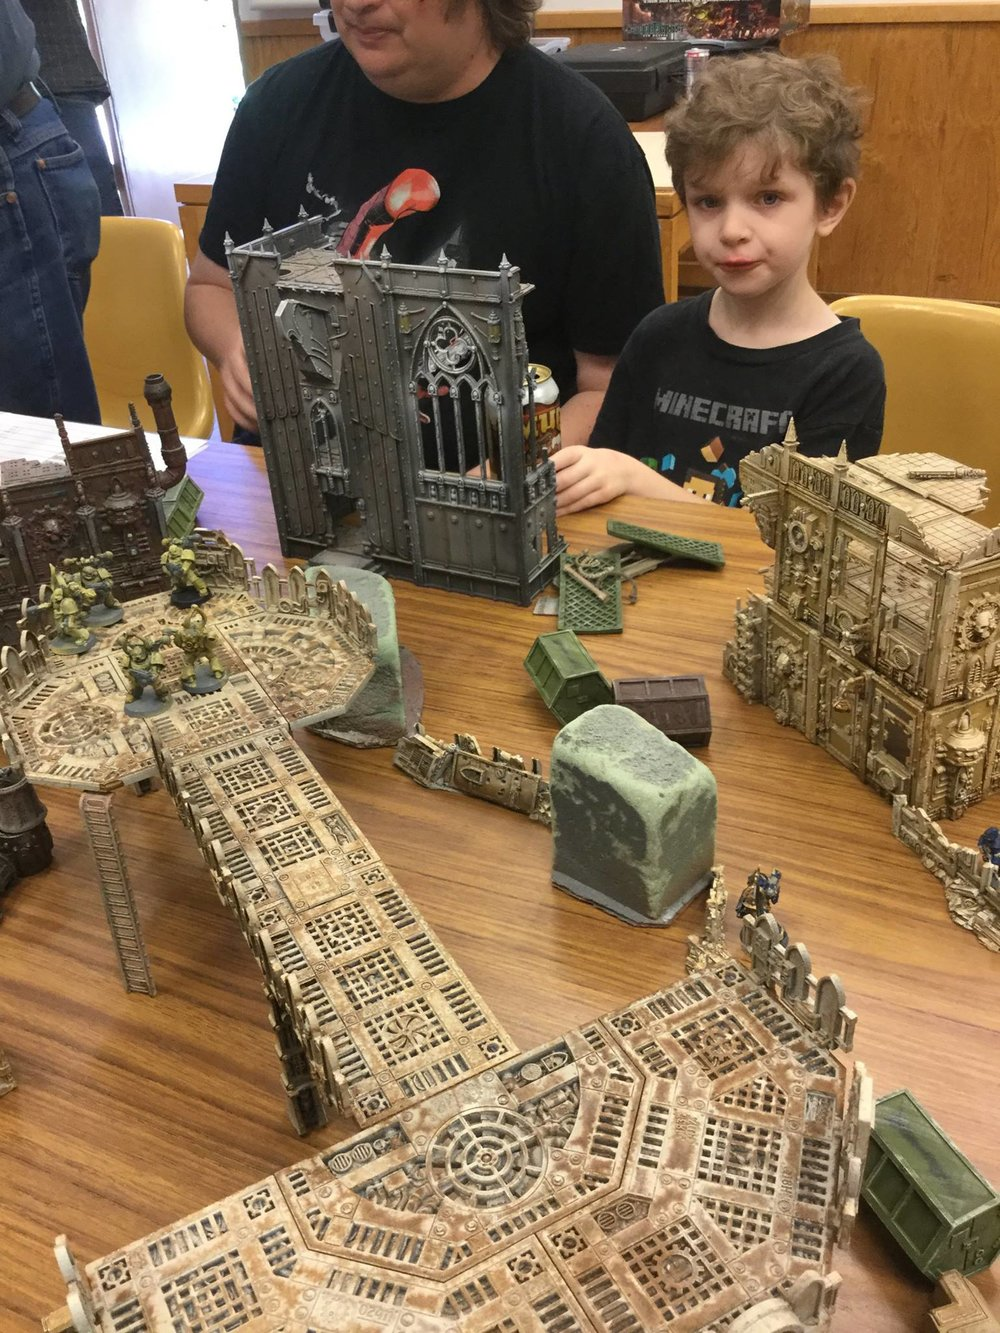 war_gaming_the-dalles-oregon-library-google-club-cook-group-kids-teens-adult-services-programs-learn-live-fun-family